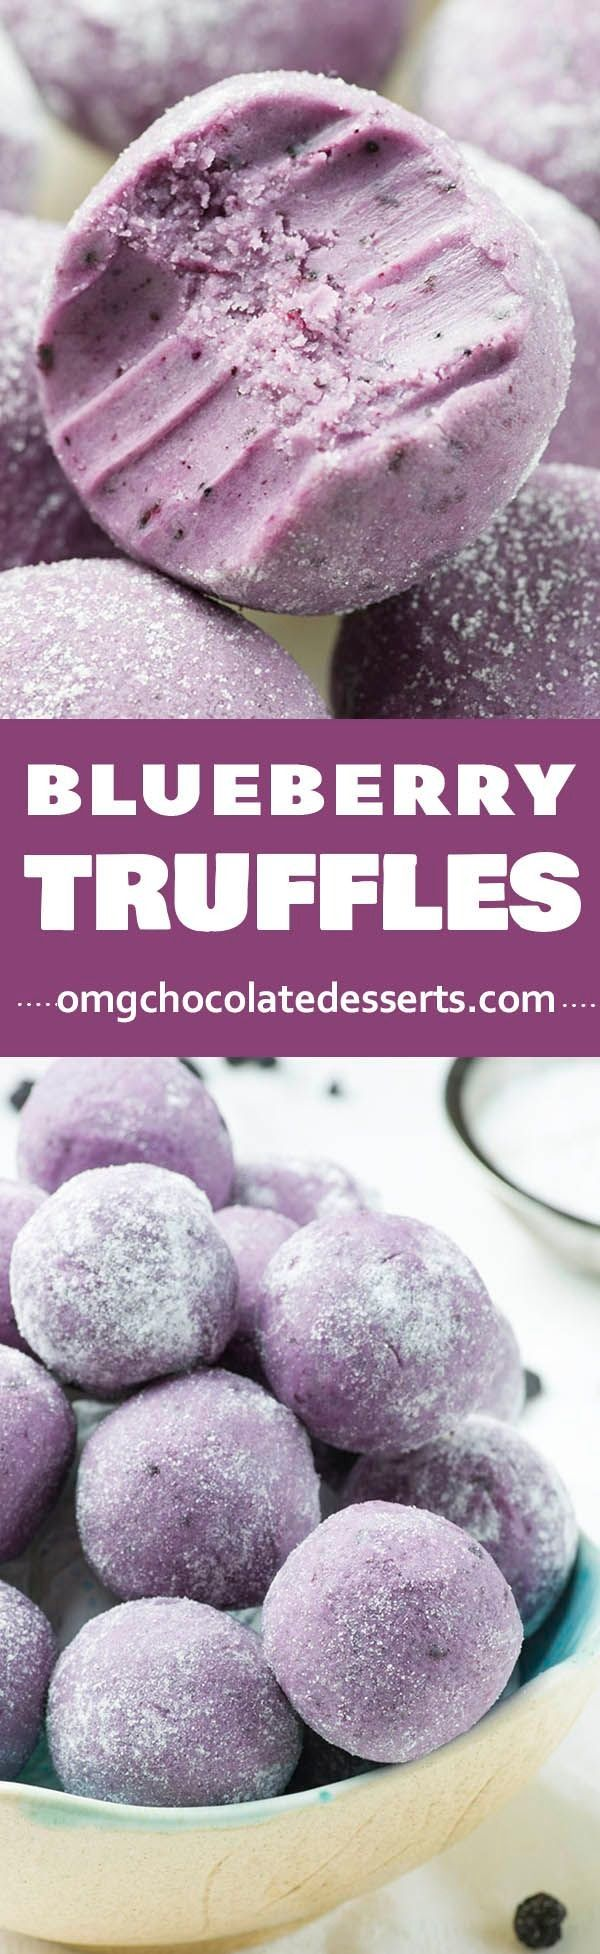 These beautiful Blueberry Truffles from @omgchocodesserts call for some white chocolate. How delicious would these be with Lindt CLASSIC RECIPE white chocolate? Yum!